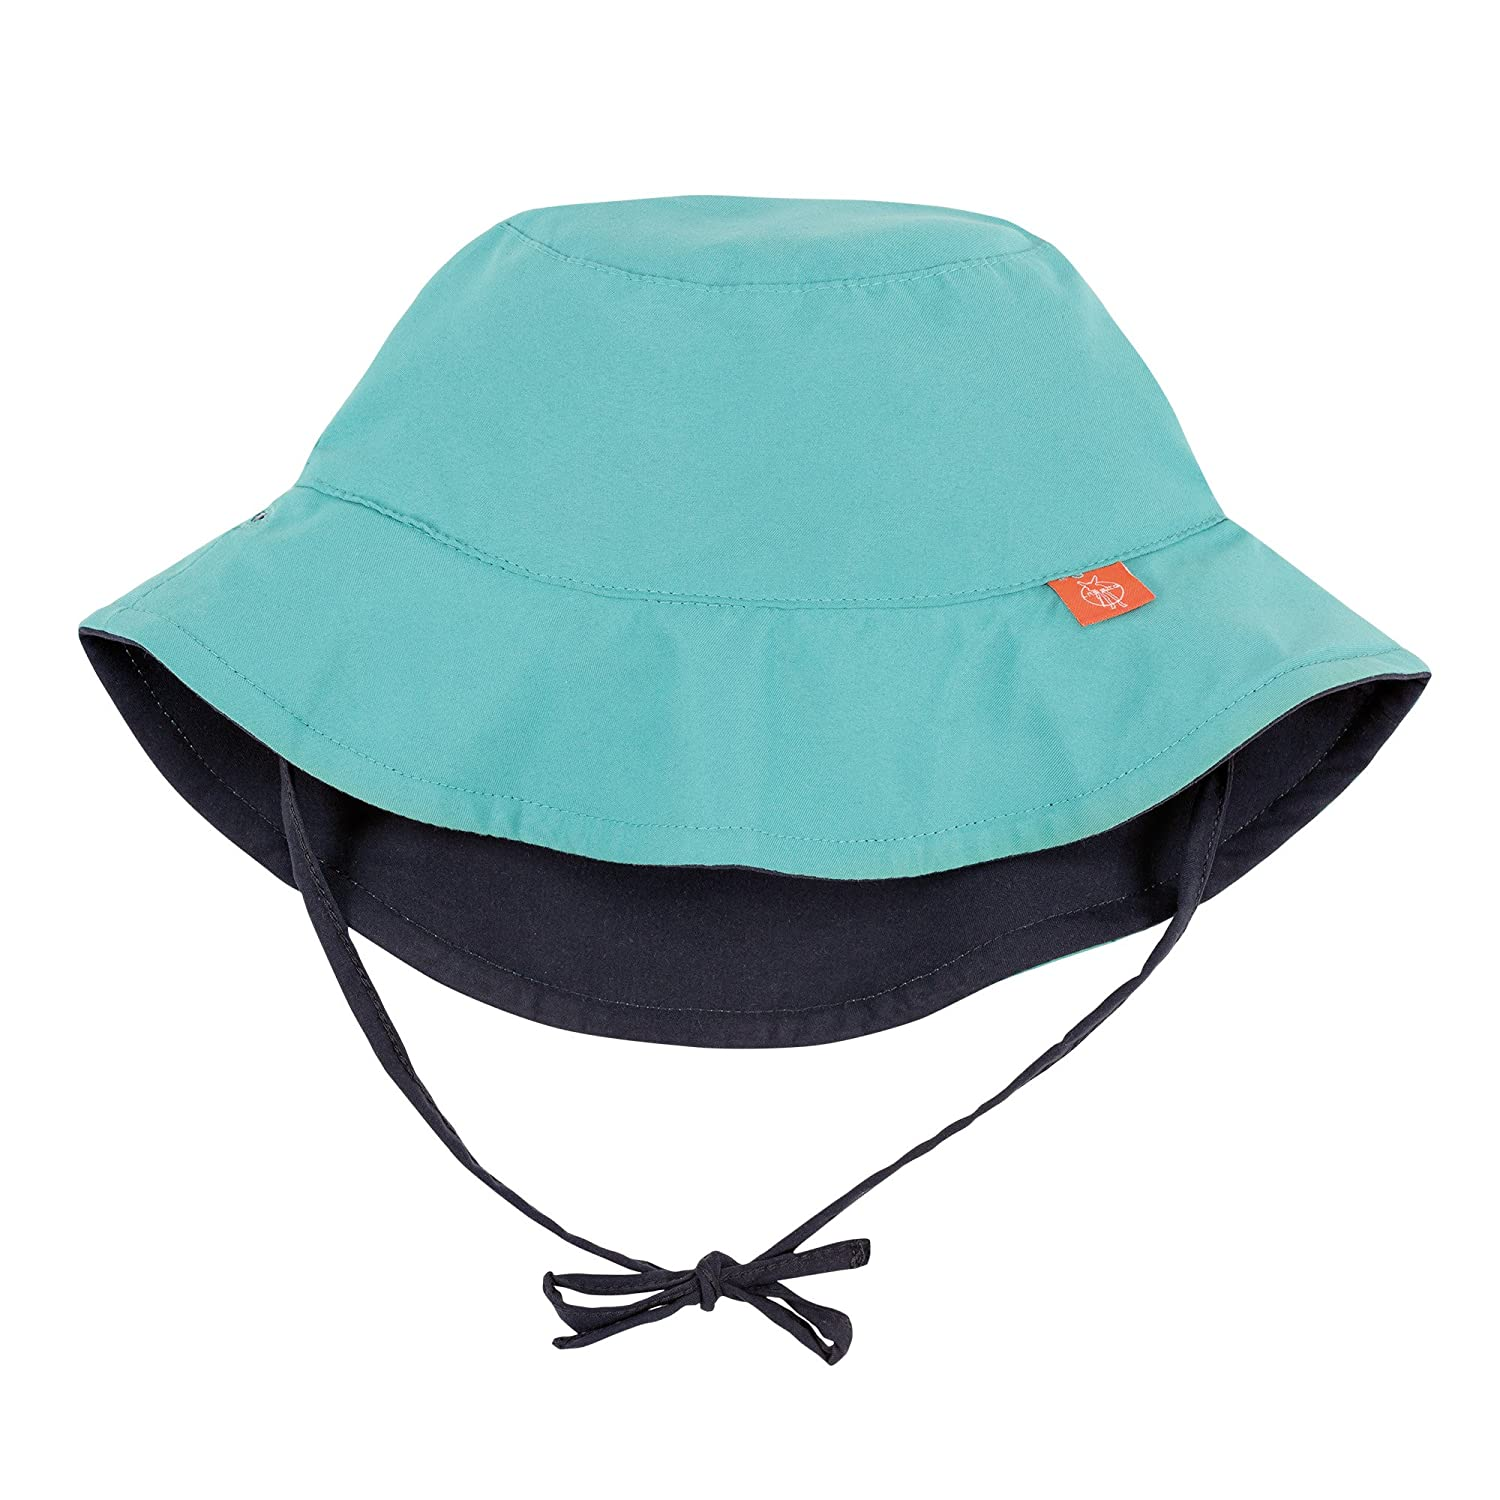 Lassig Baby Sun Protection Bucket Hat UV-Protection 50 Plus-Ice Cream, Size: Toddler, 18-36-Month 1433005106-36